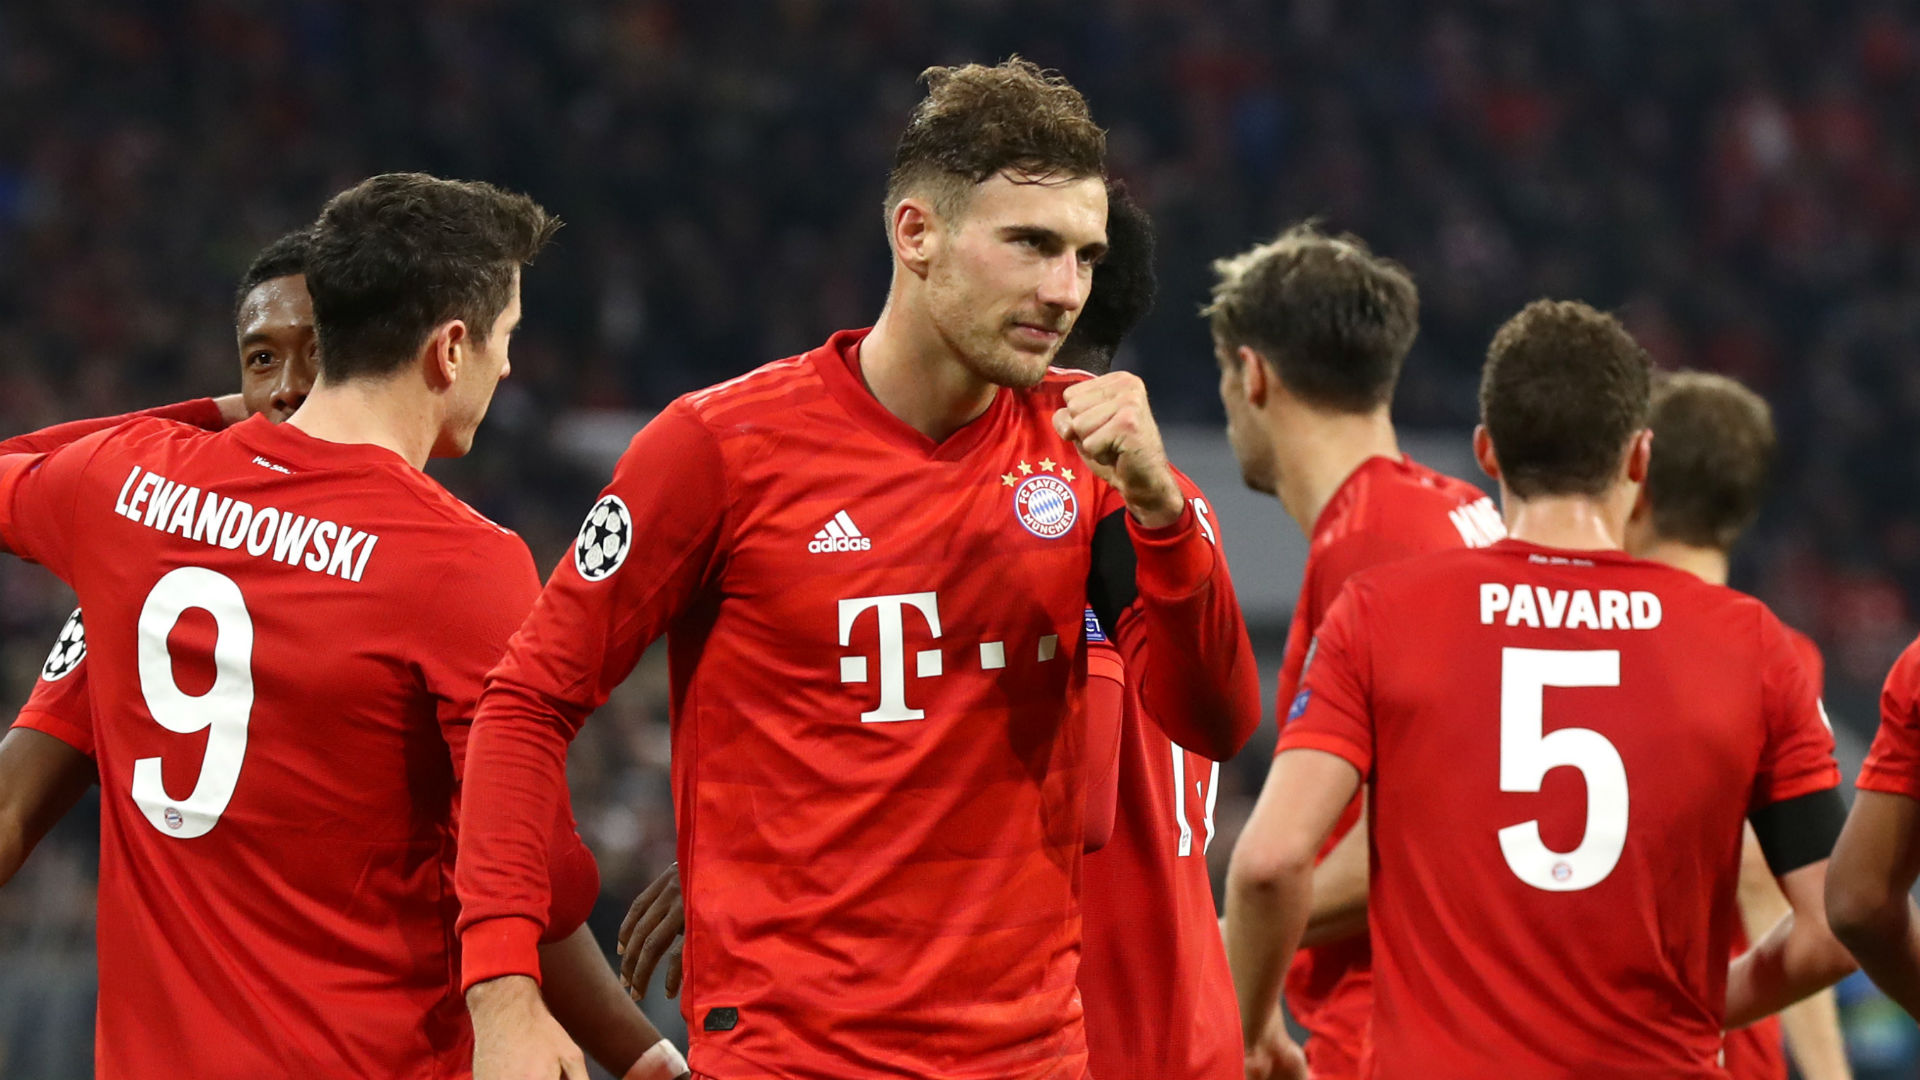 'Bayern confident they can claim Chelsea scalp' – Goretzka eyeing Champions League challenge